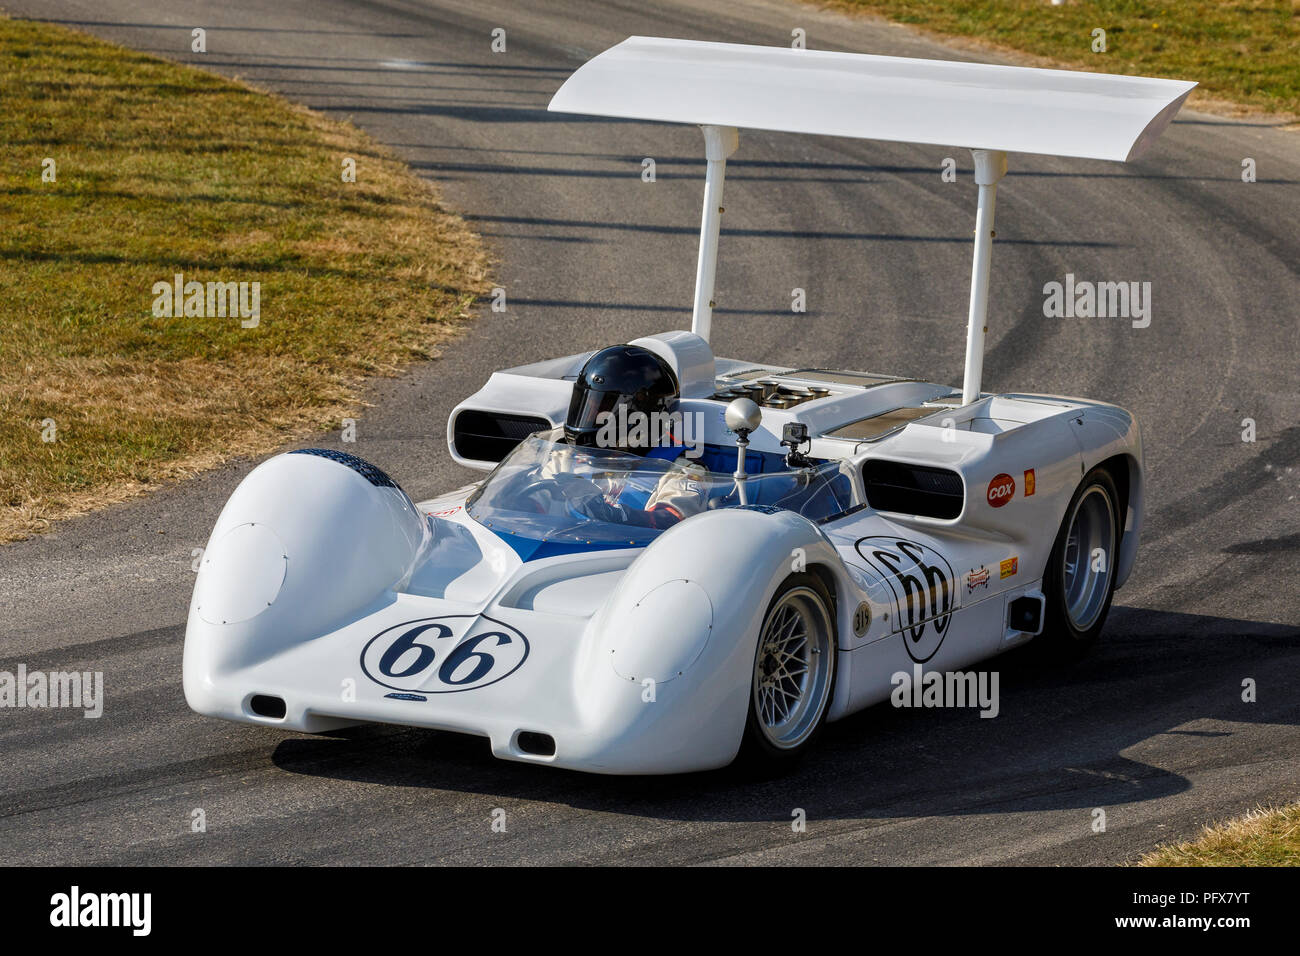 1966 Chaparral-Chevrolet 2E Can-Am racer with driver Kai Anderson at the 2018 Goodwood Festival of Speed, Sussex, UK. Stock Photo